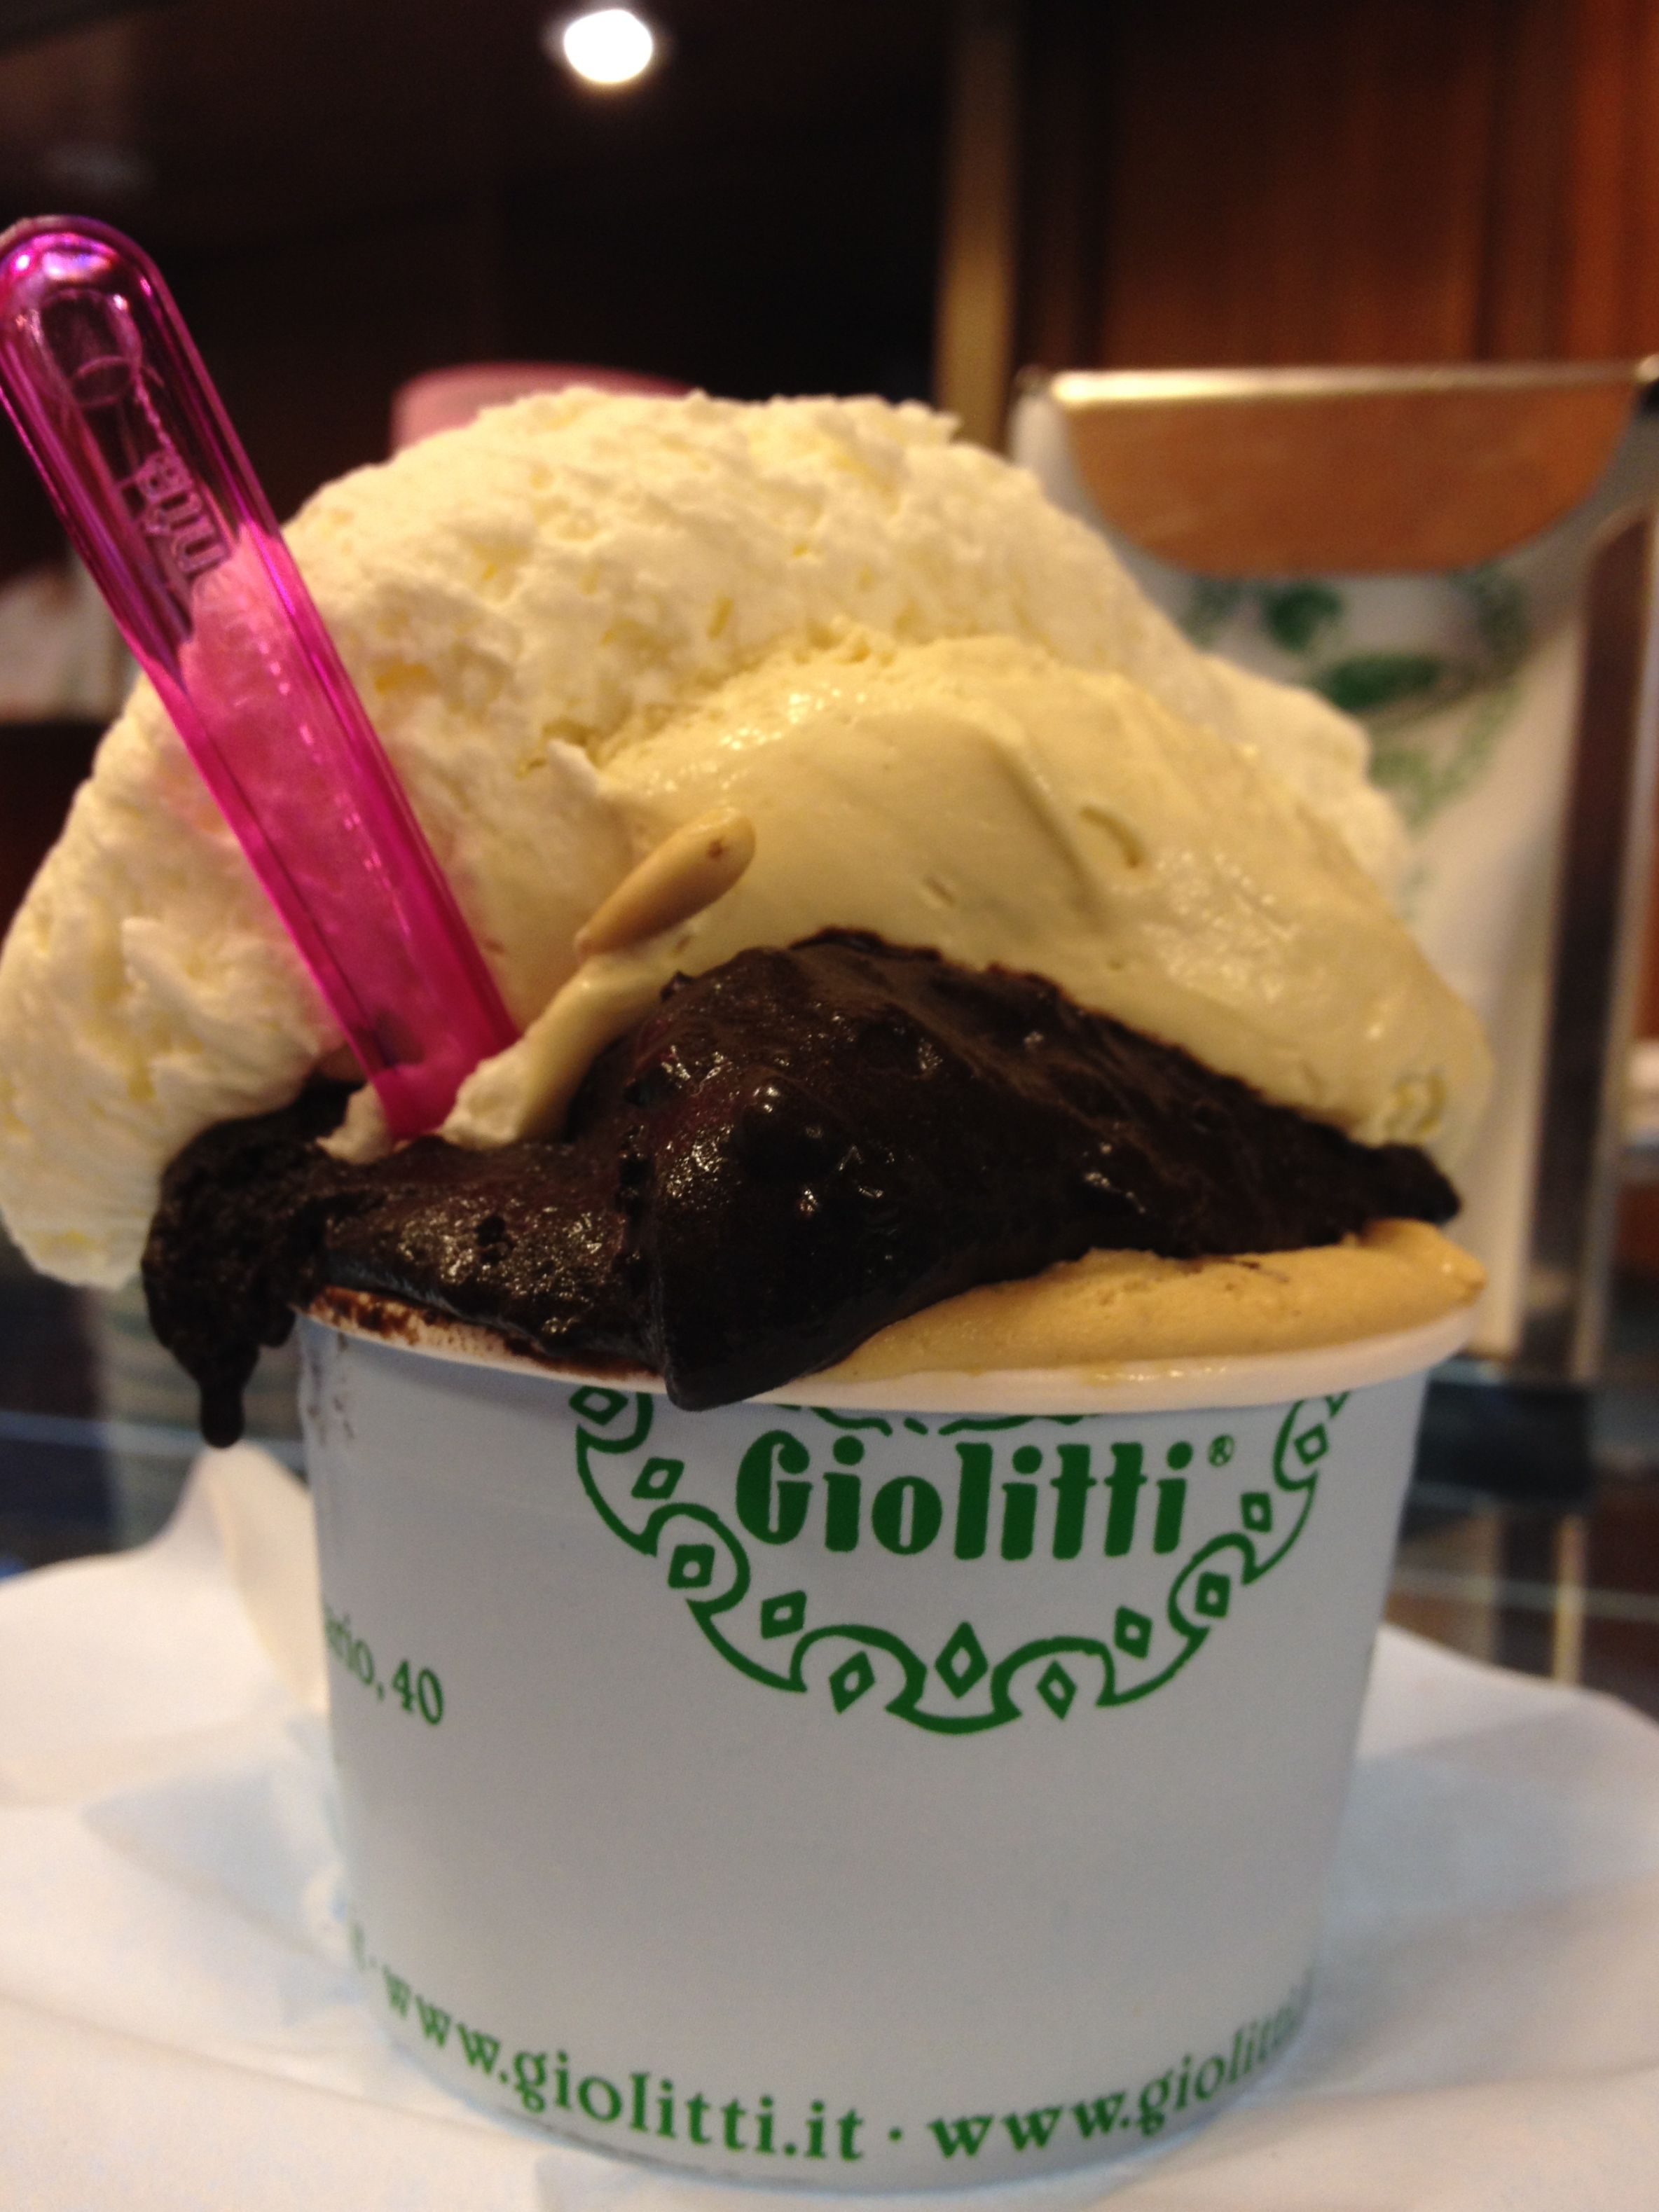 Giolitti my favorite in Rome | Rome, Italy | Pinterest